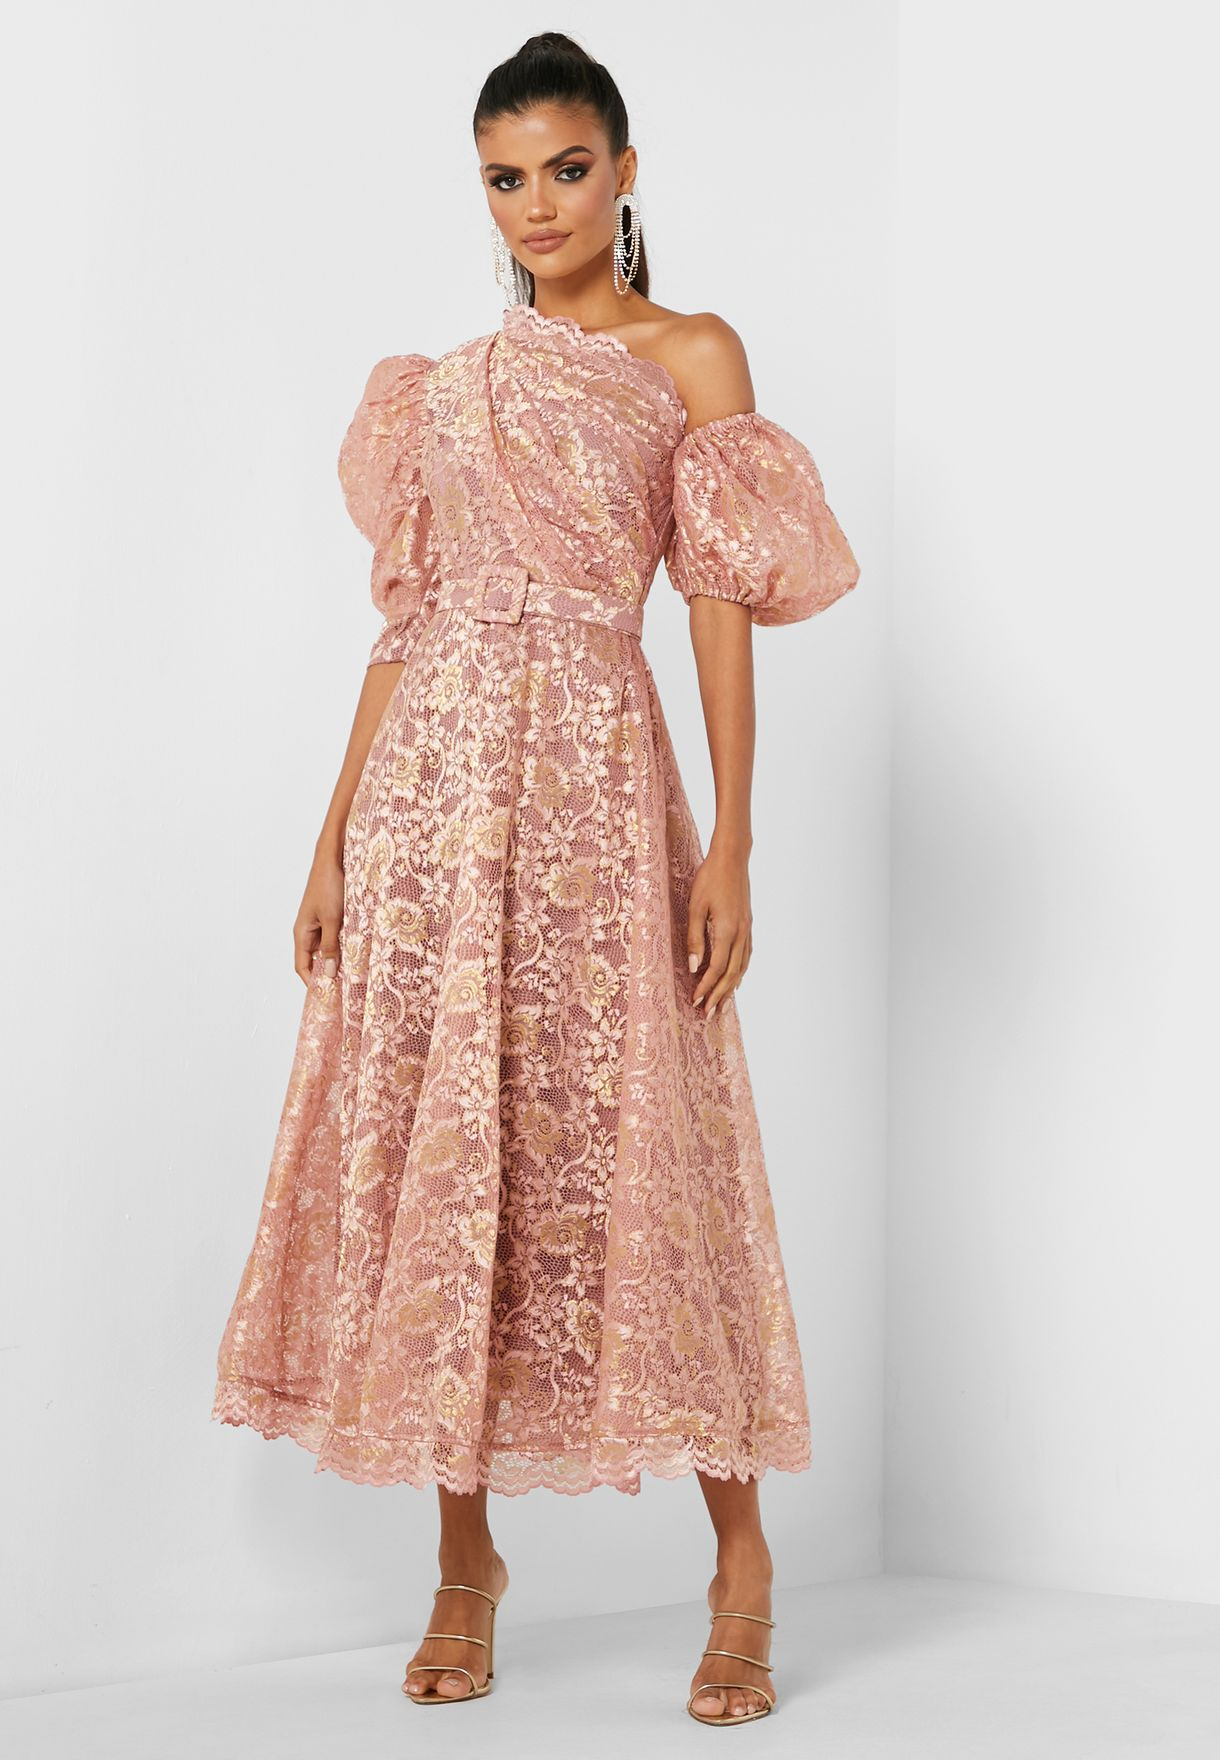 Puff Sleeves Lace Dress